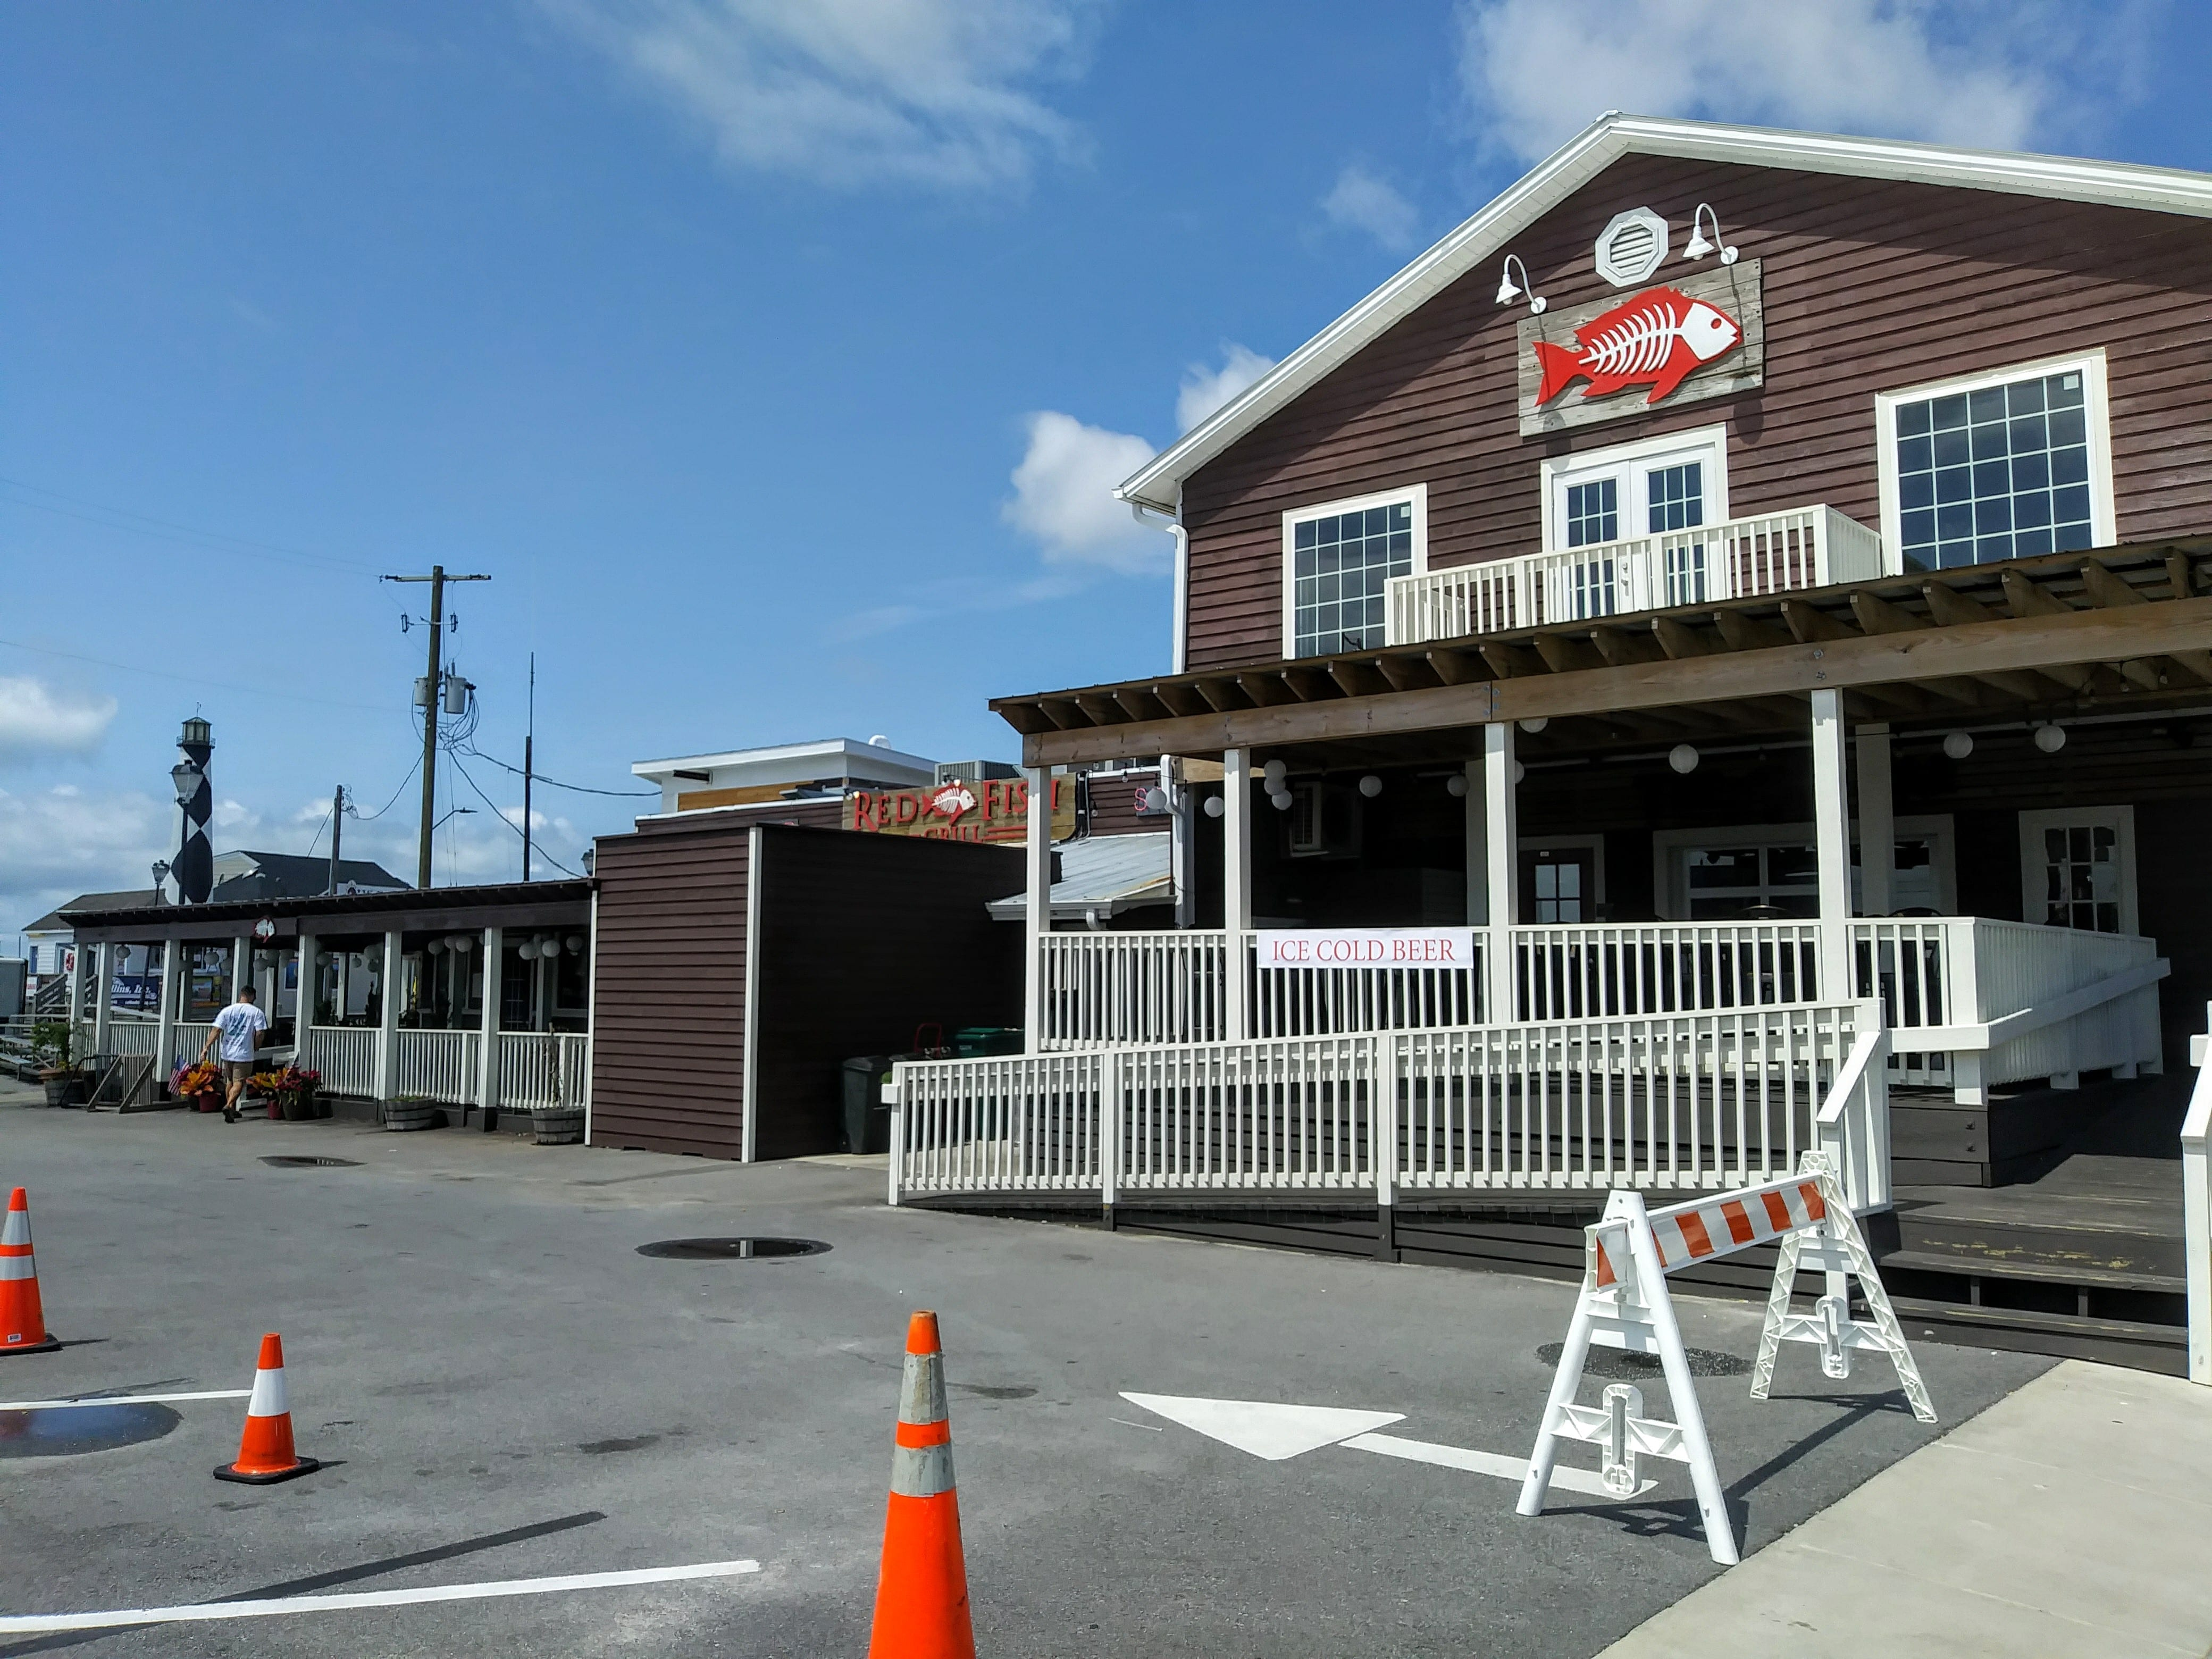 Red Fish grill and restaurant across from landing